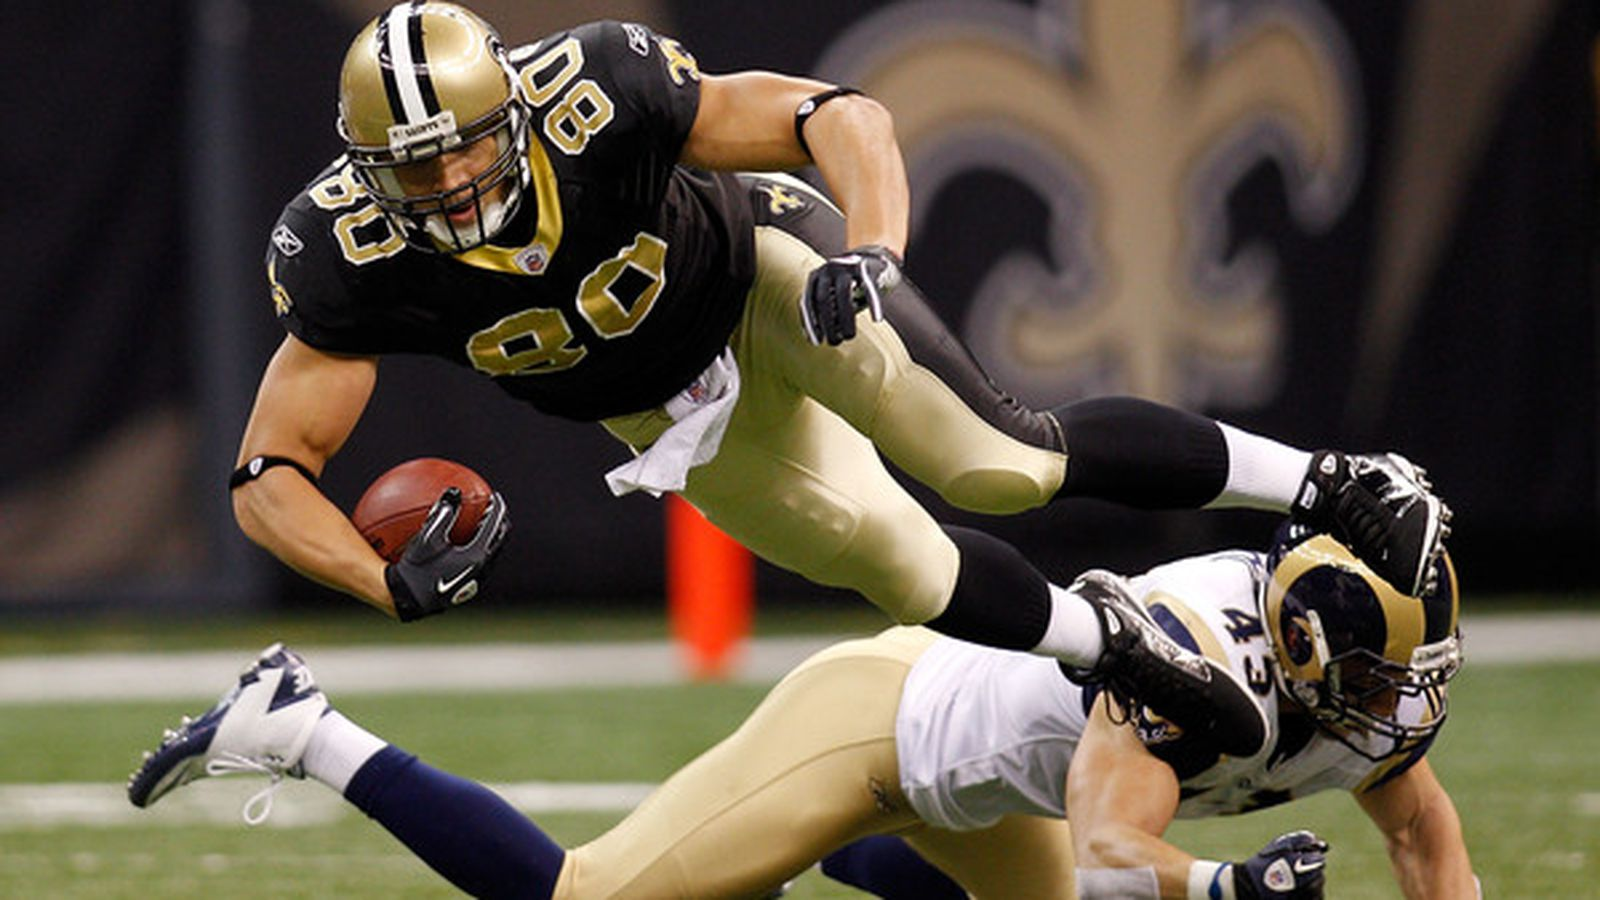 Saints Vs Rams Preview And Matchup History Canal Street Chronicles